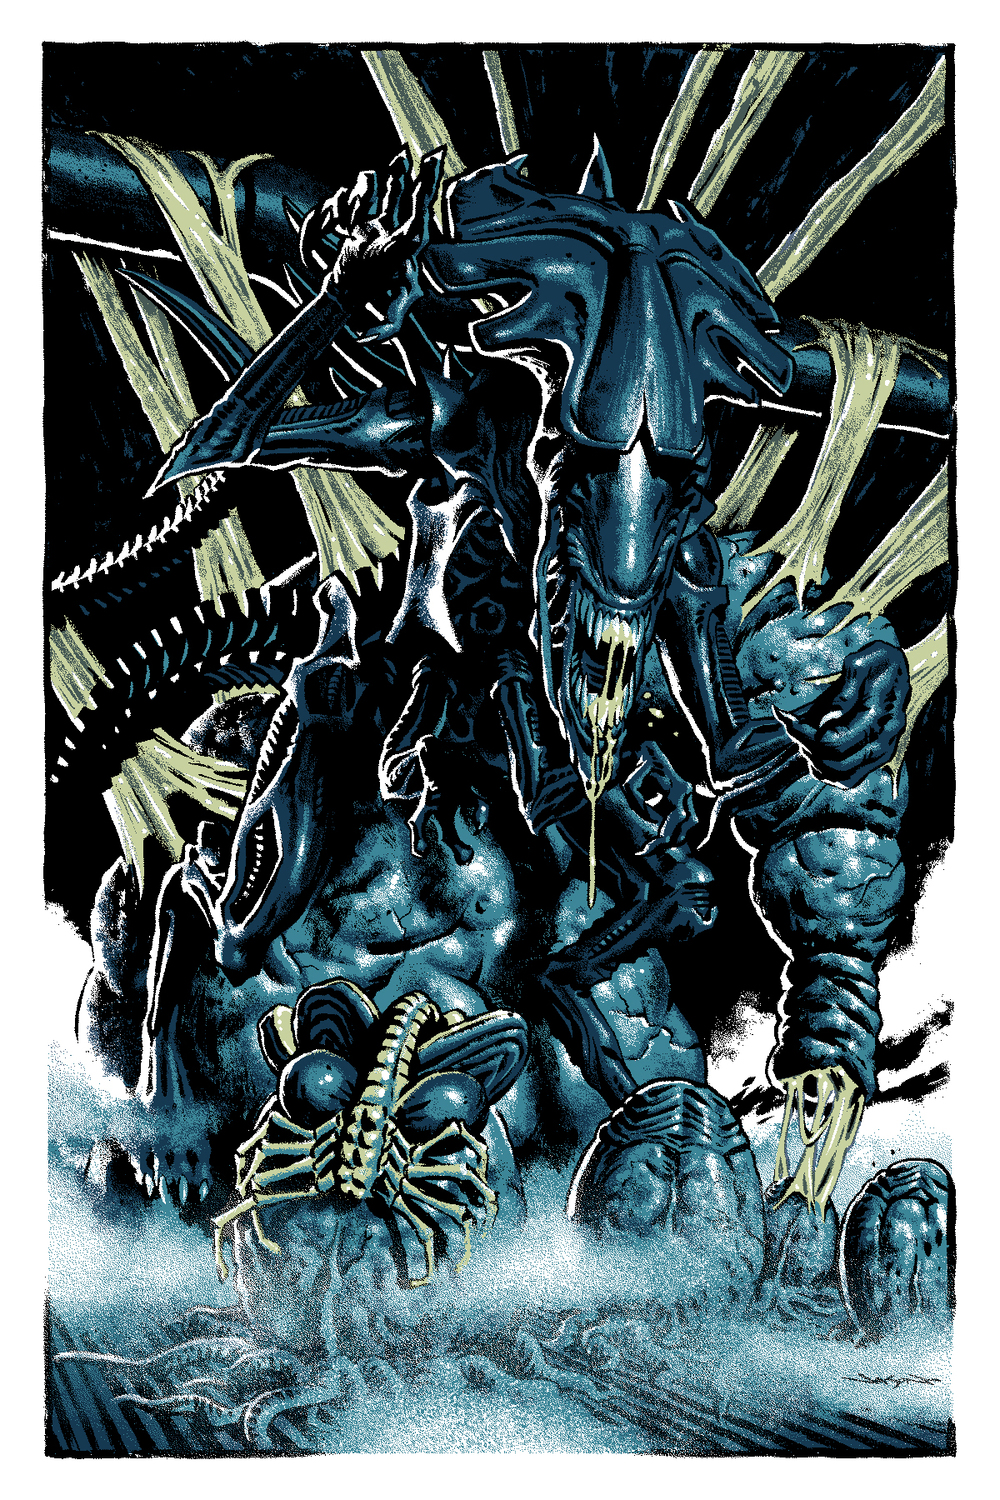 Mondo Villain Poster Art for ALIENS, WOLFMAN, SUPERMAN ...Xenomorph Queen Prometheus